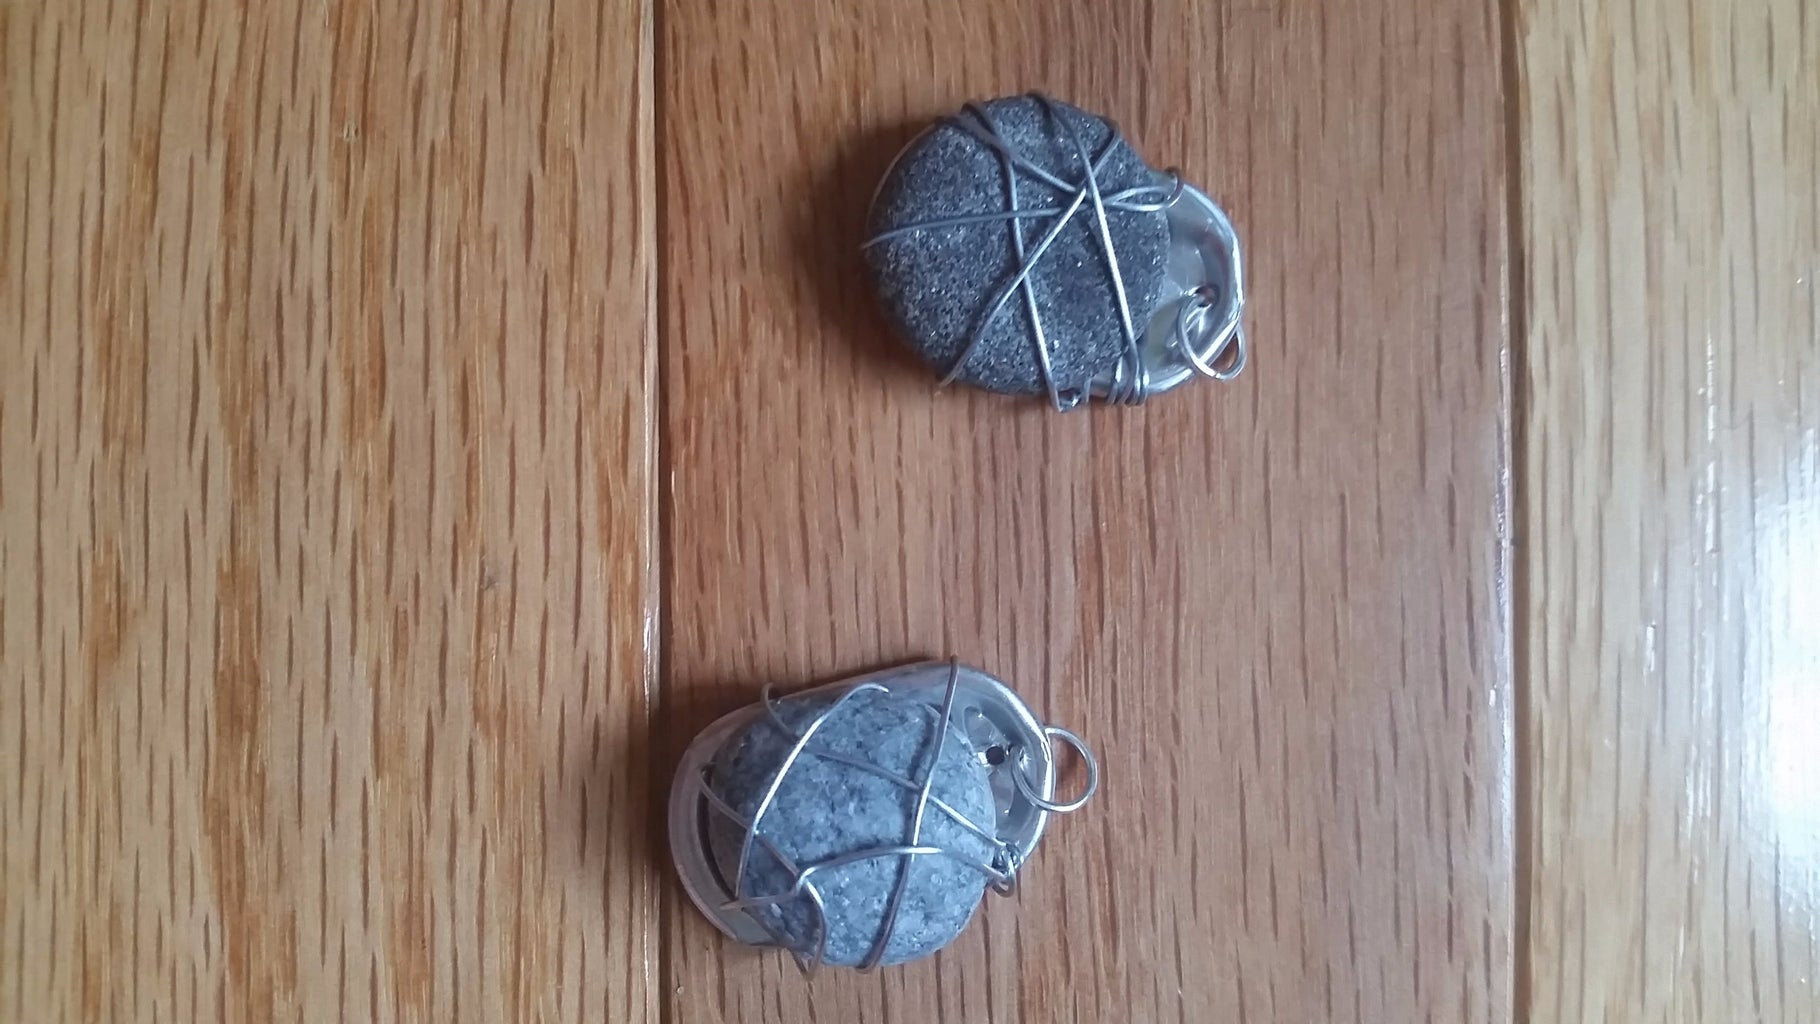 Make Rock Pendants From Soda Can Tabs!